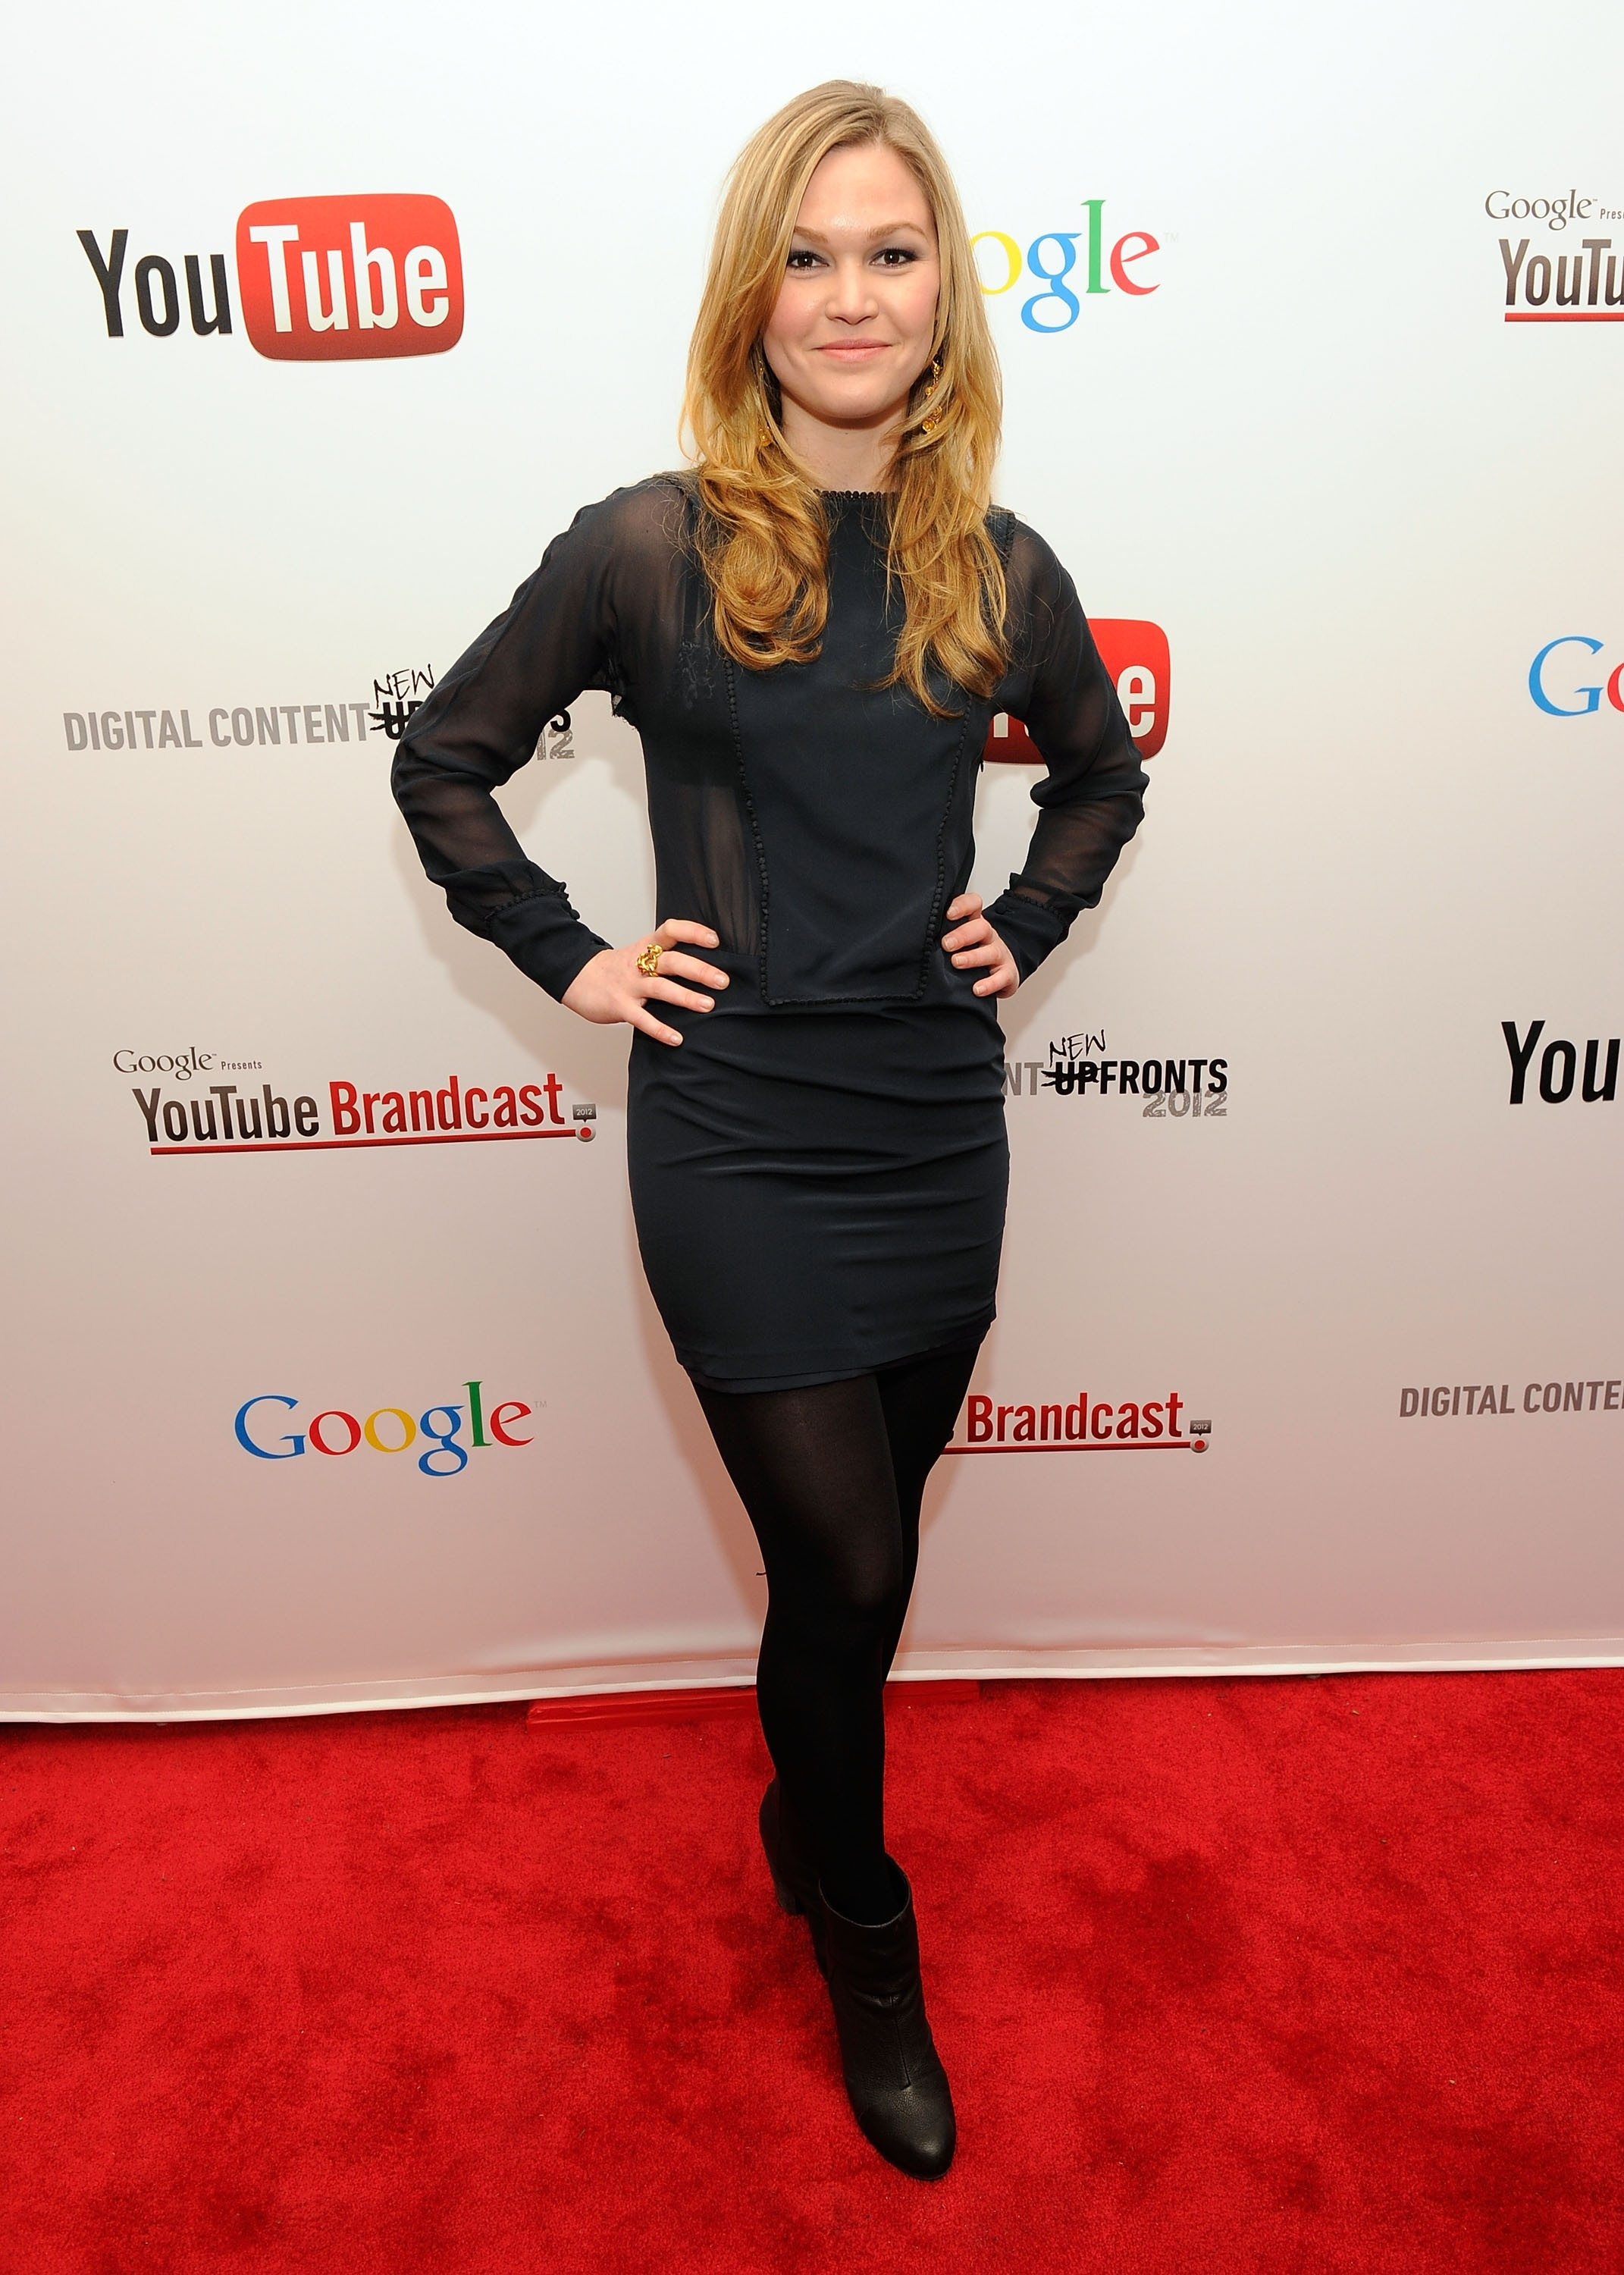 027969665_Julia_Stiles_YouTube_2012_Upfronts_Presentation5_122_223lo.jpg